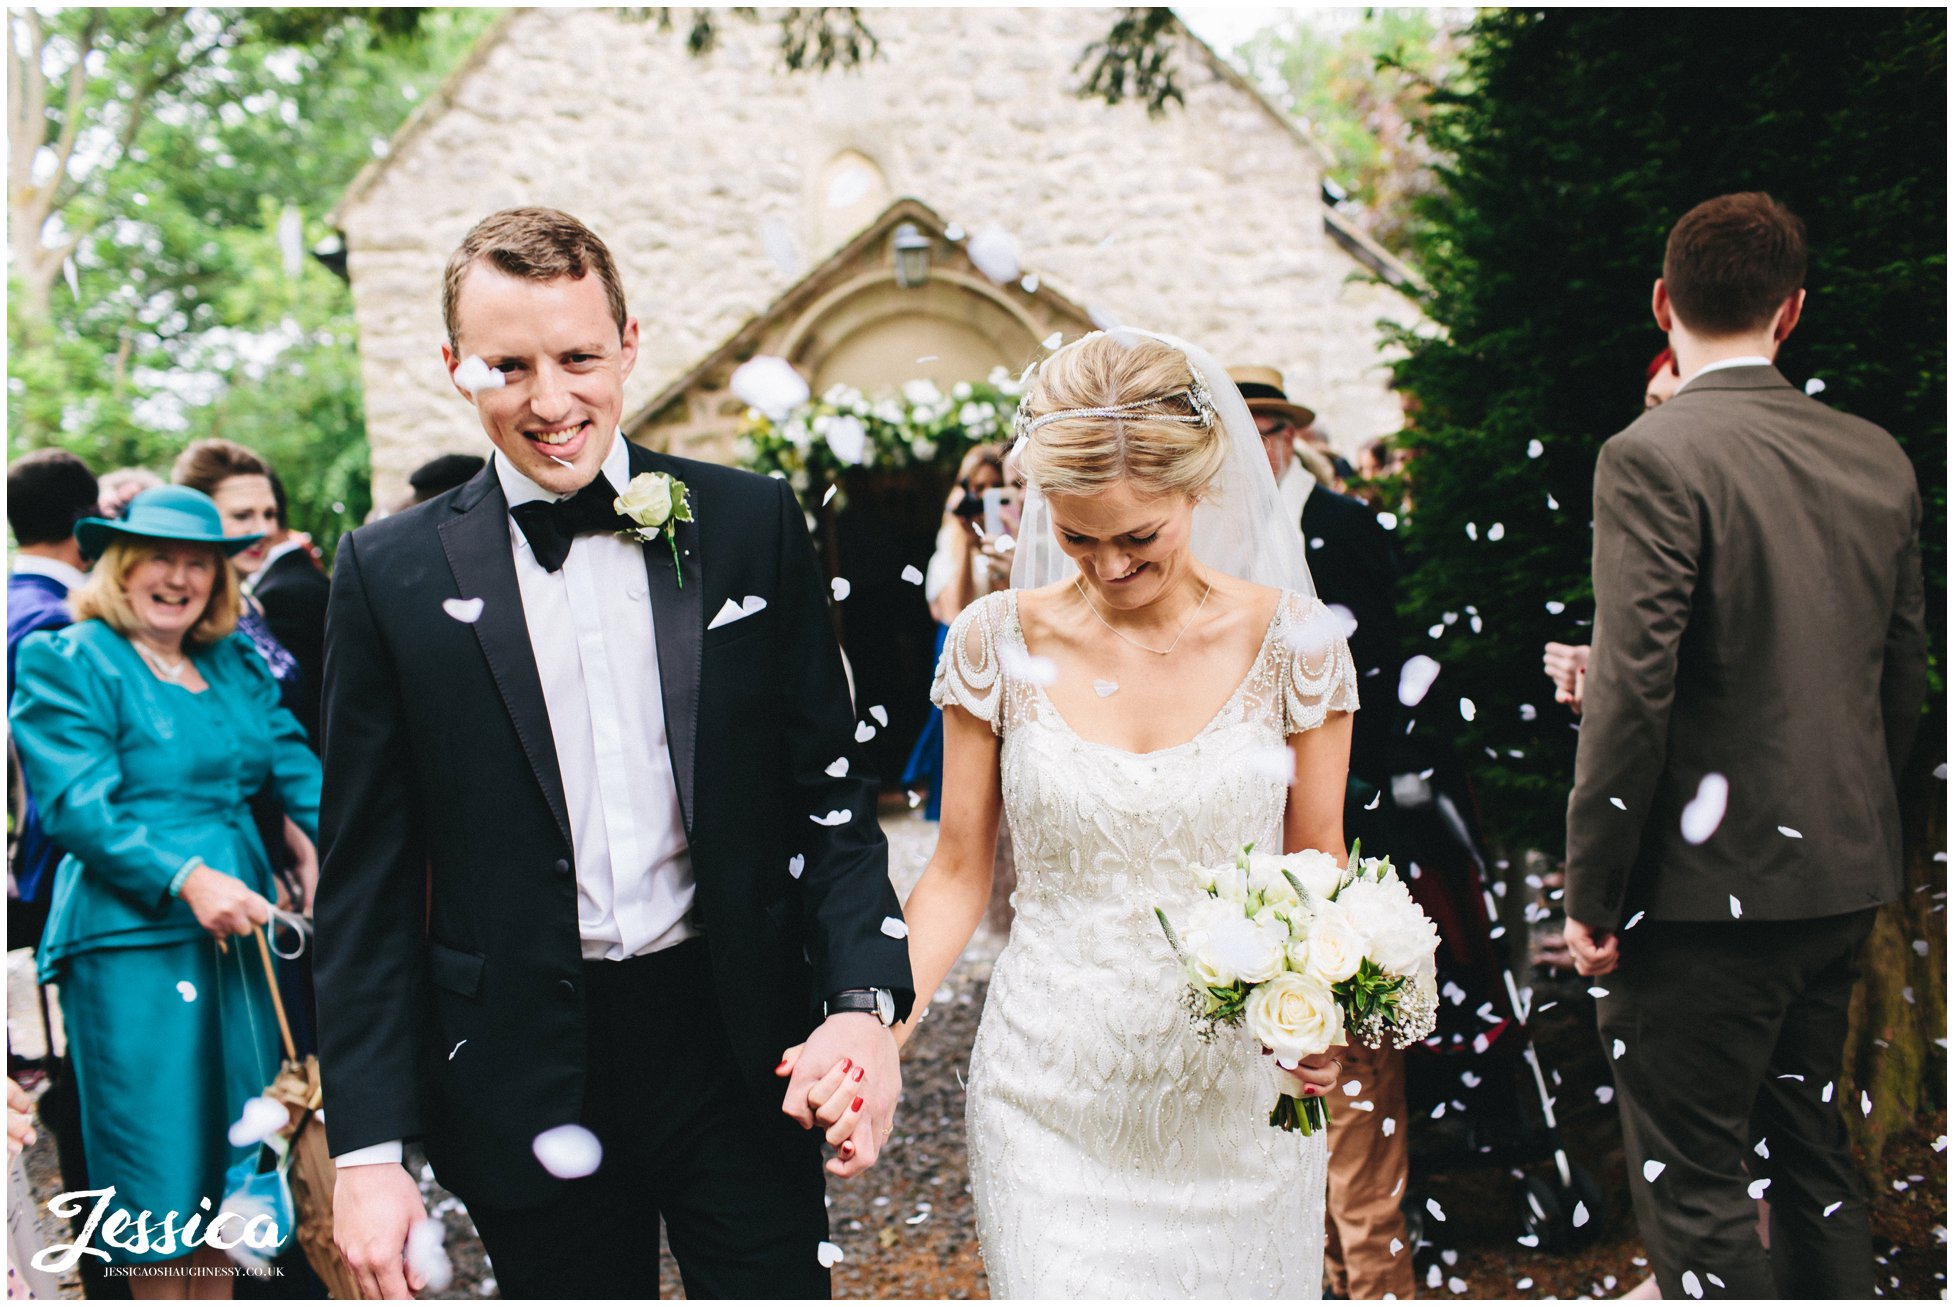 newly wed's walk through confetti line after their ceremony in Trevor, North Wales